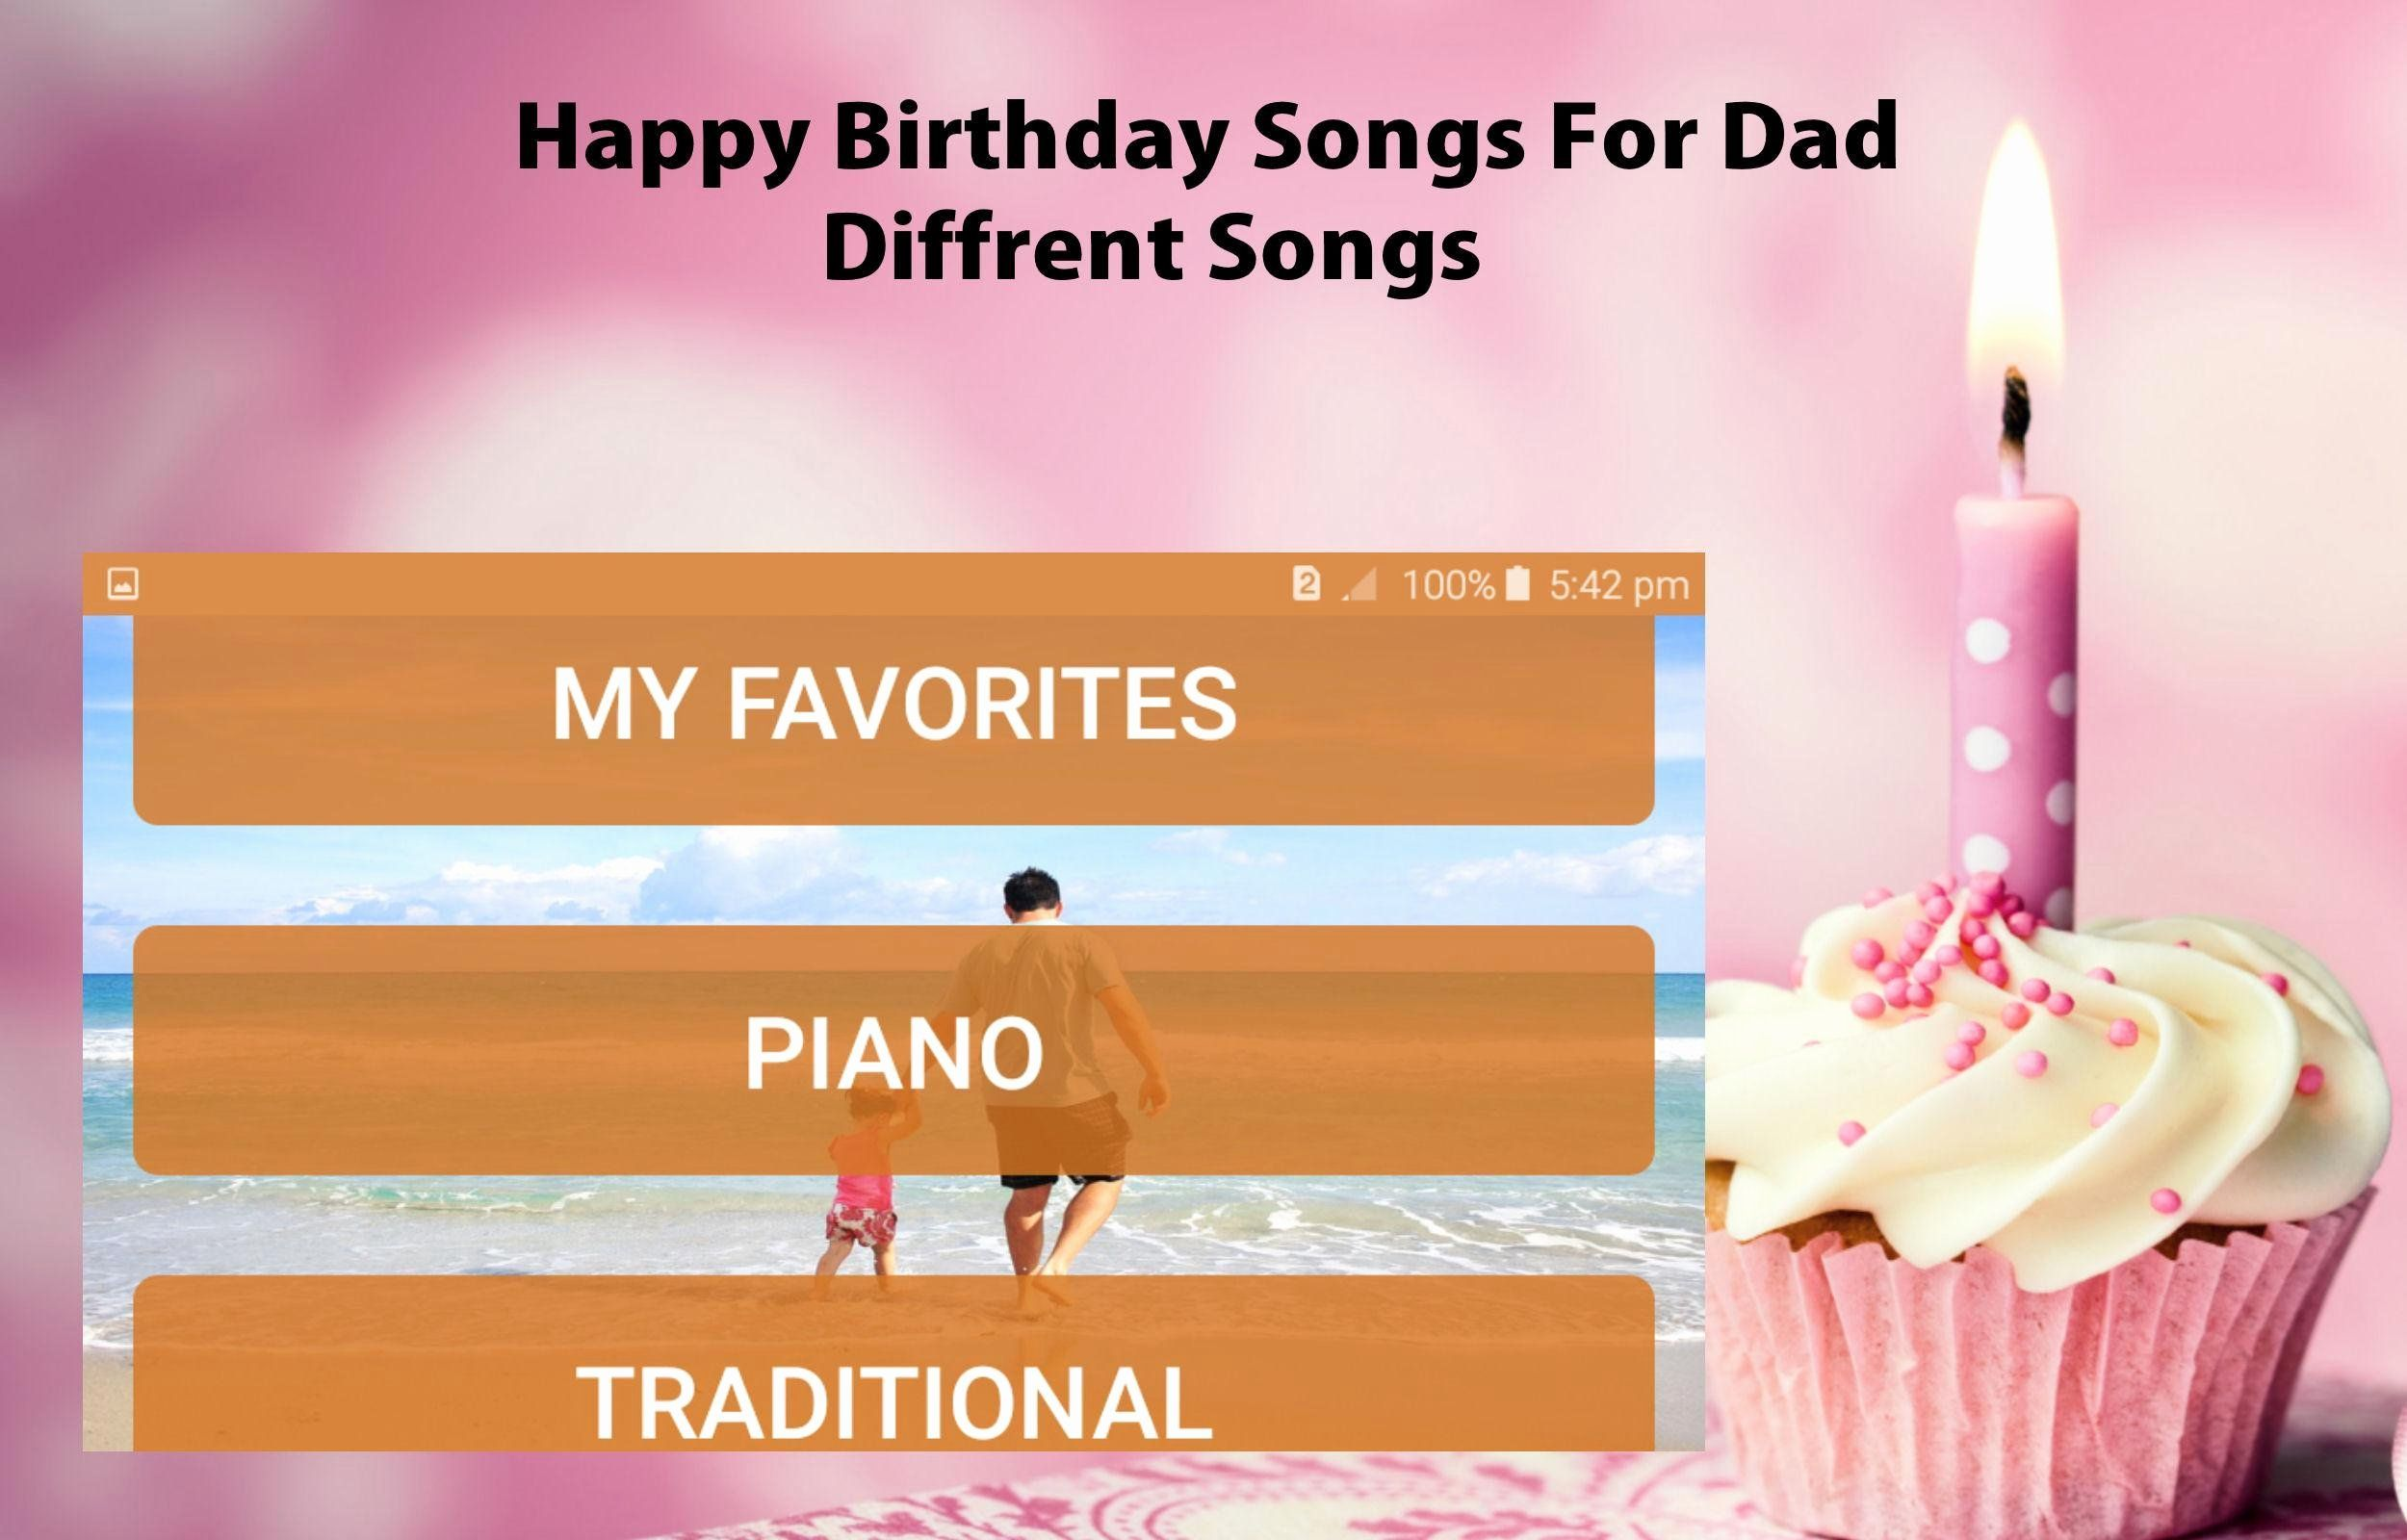 Happy Bday Dad Pictures Beautiful Happy Birthday Dada song